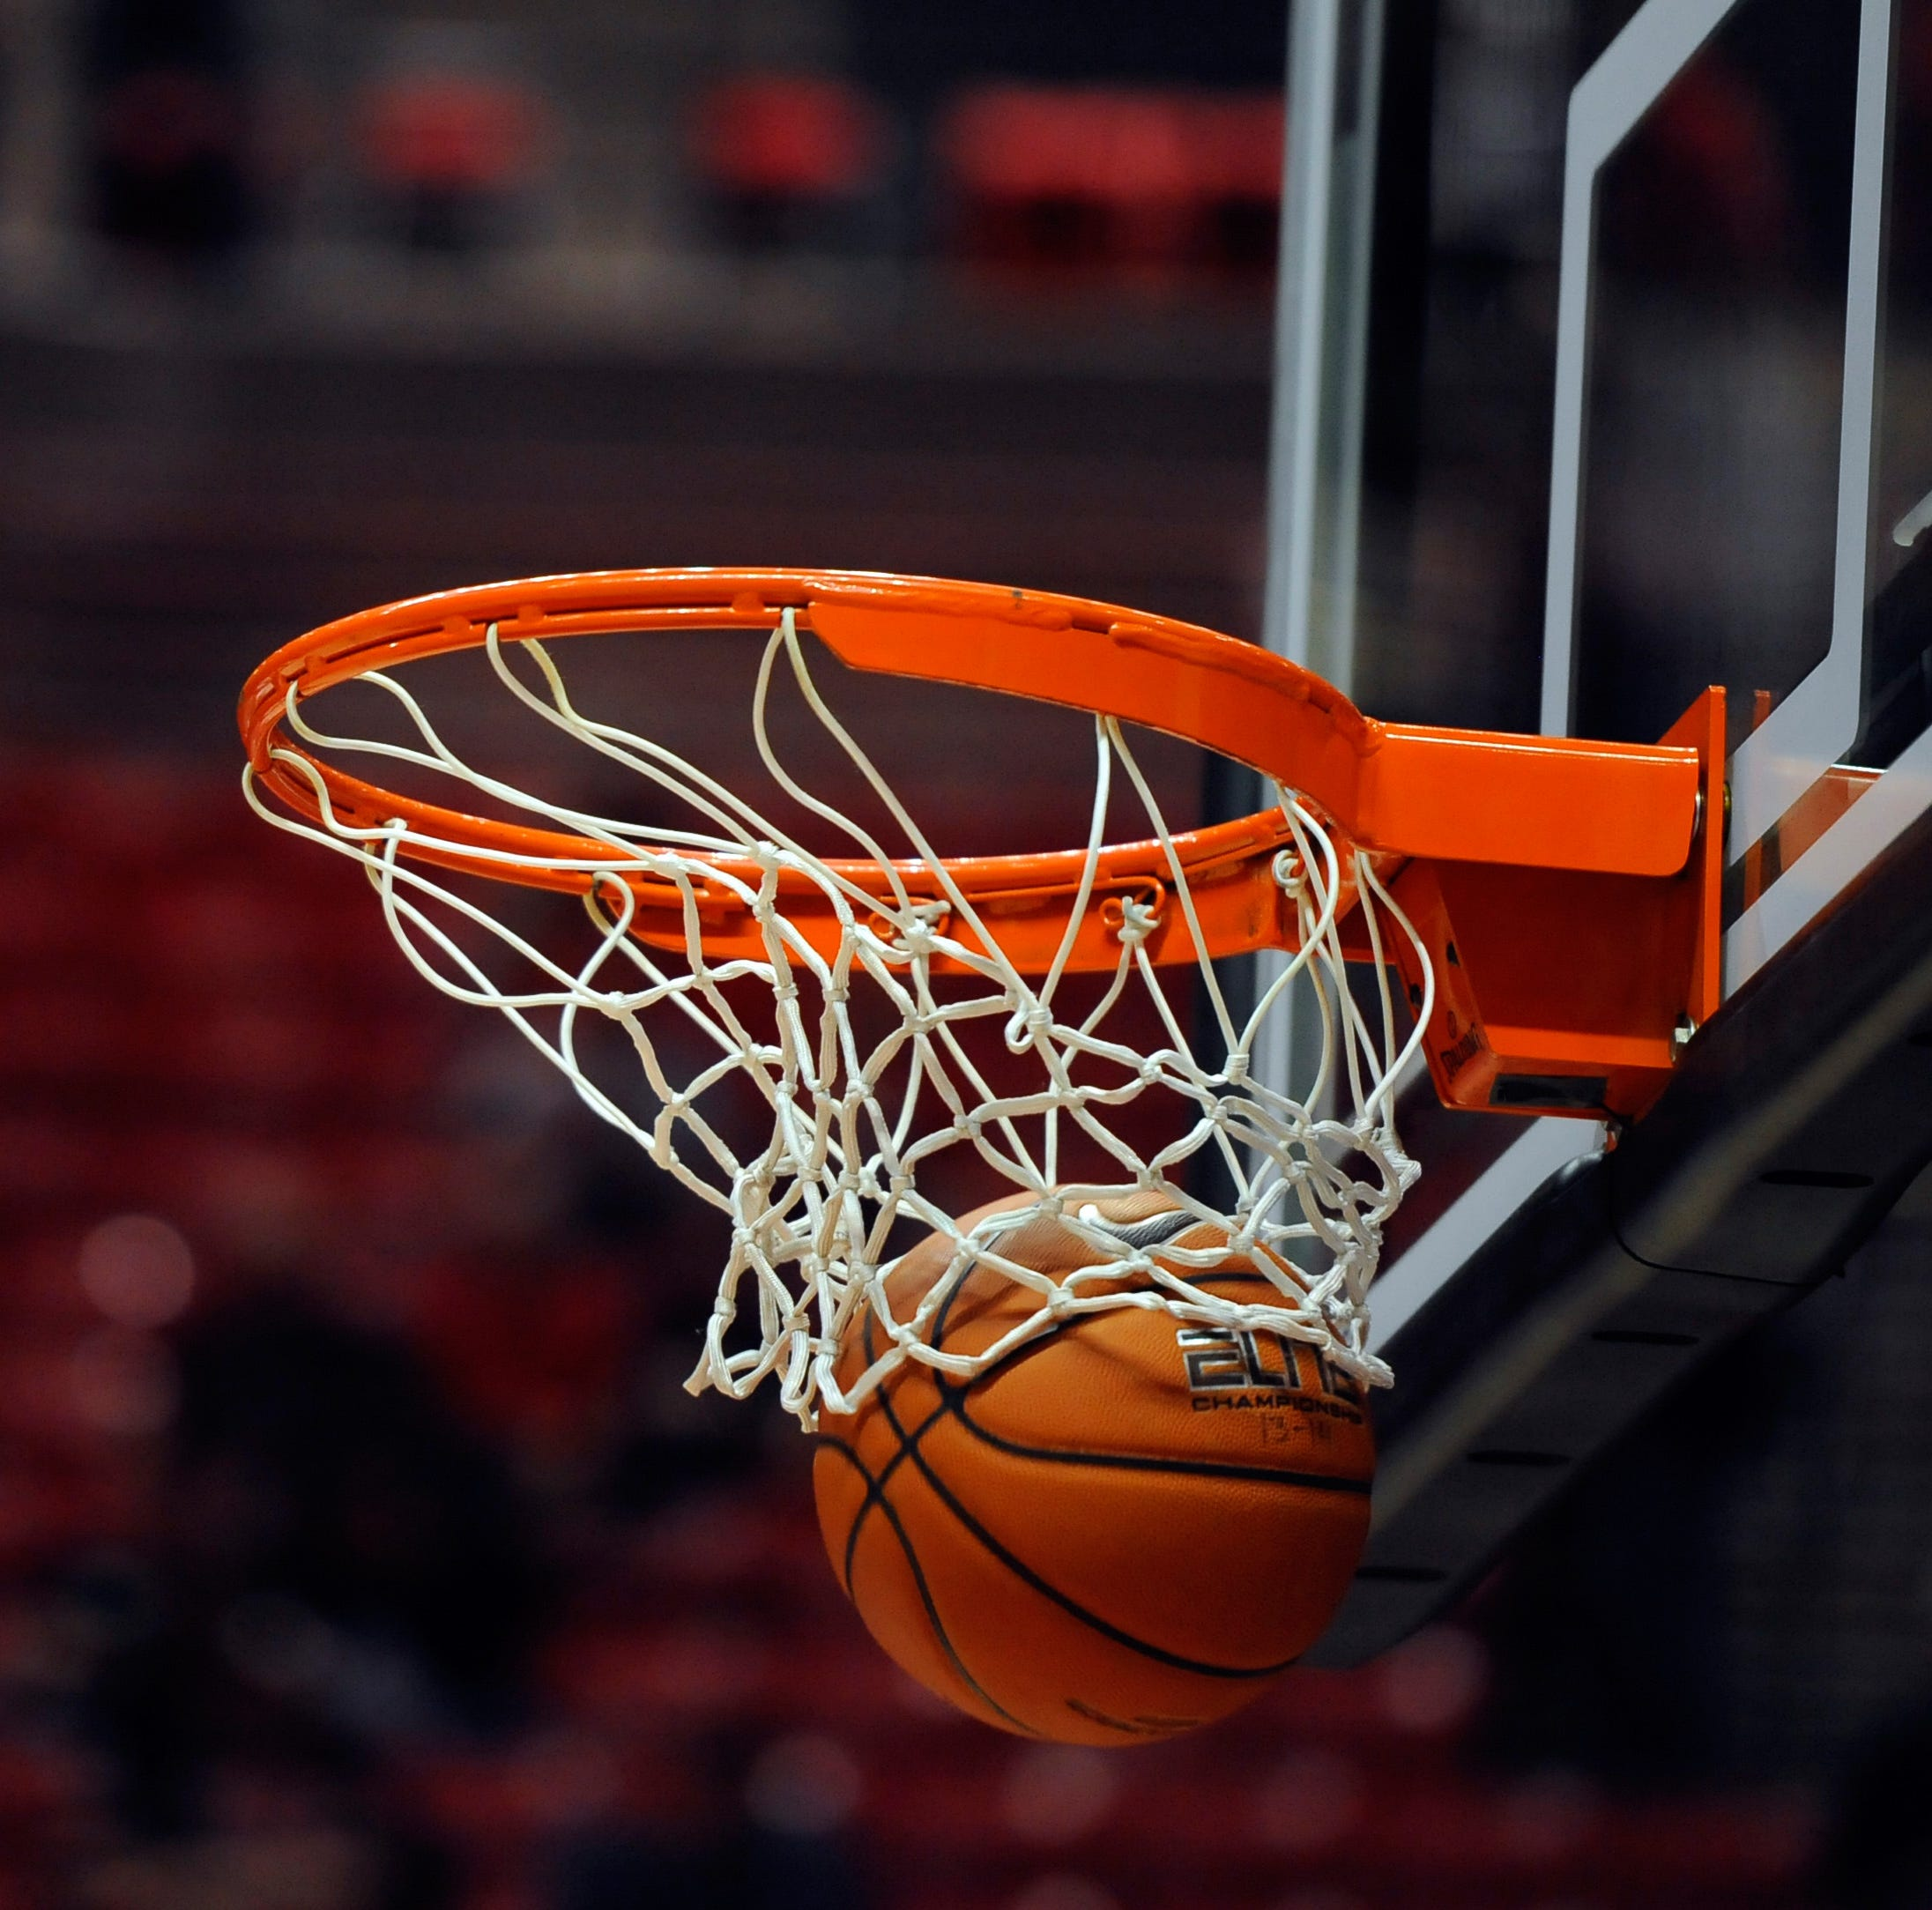 High school basketball scores from Saturday's playoff games